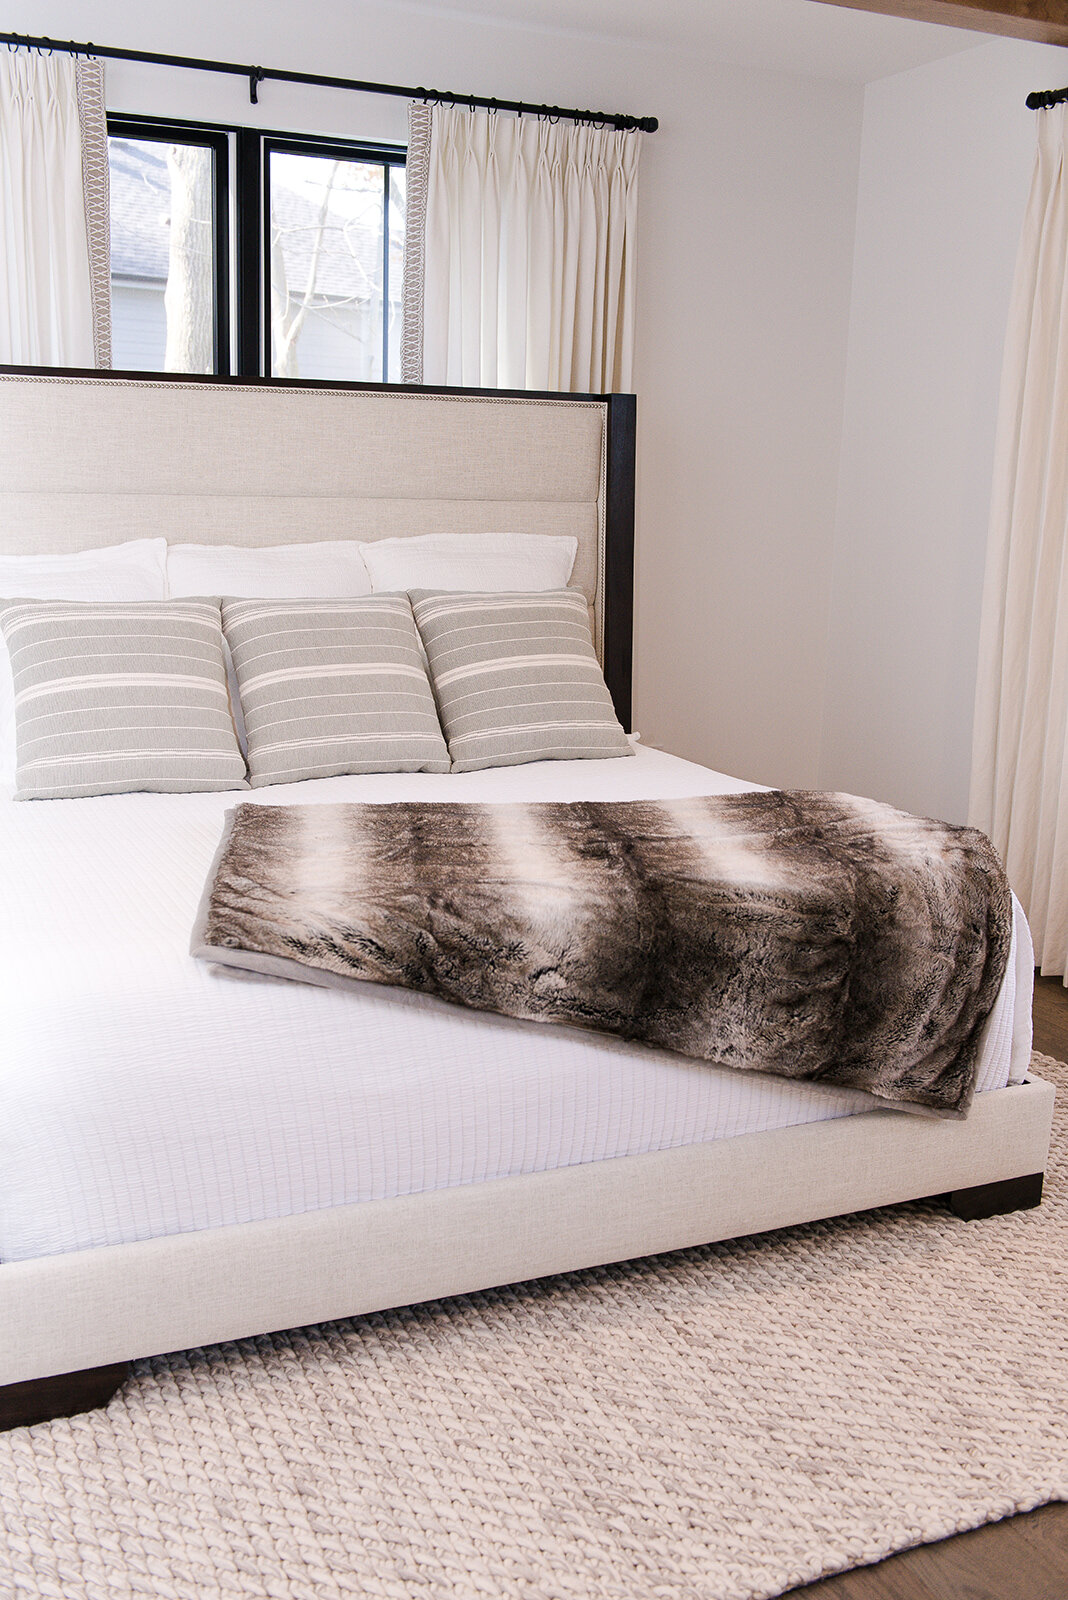 We chose this Vanguard upholstered bed for our modern farmhouse project and could not love it more for the space. It is full of comfort while giving a sleek line to the master bedroom.